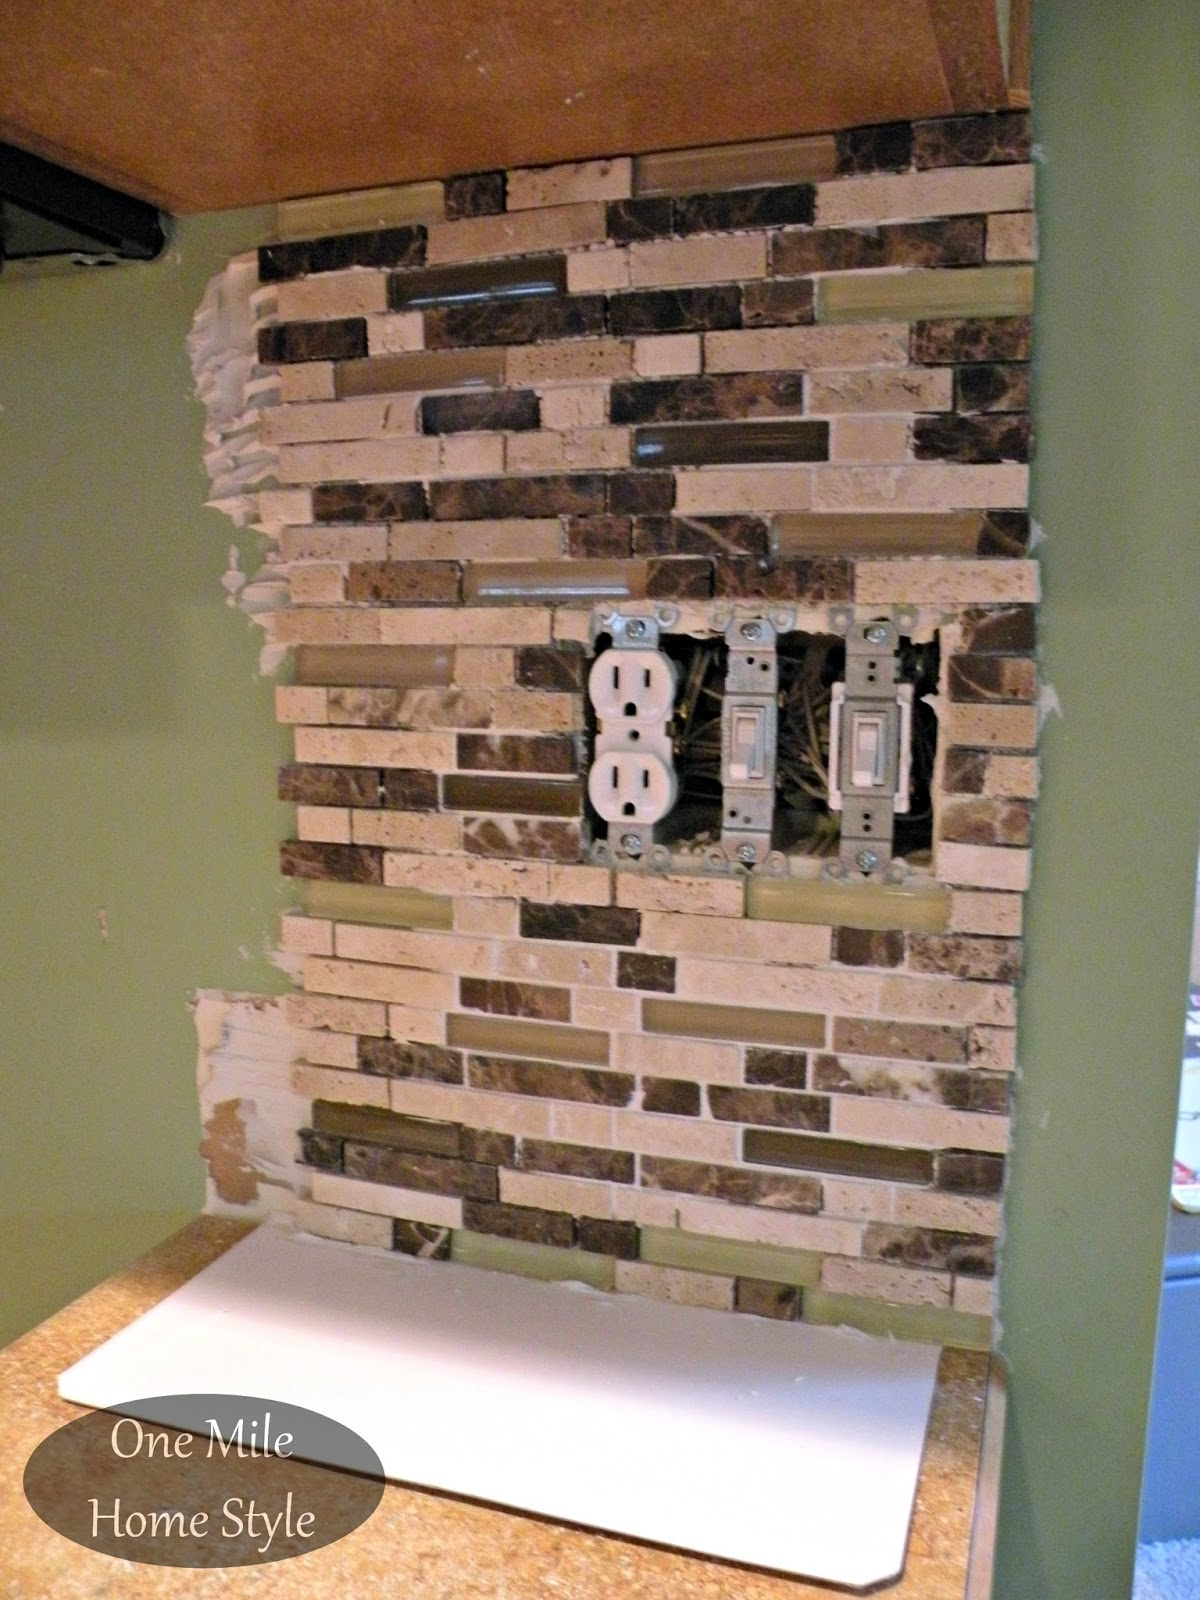 First section of backsplash tiles up on the wall